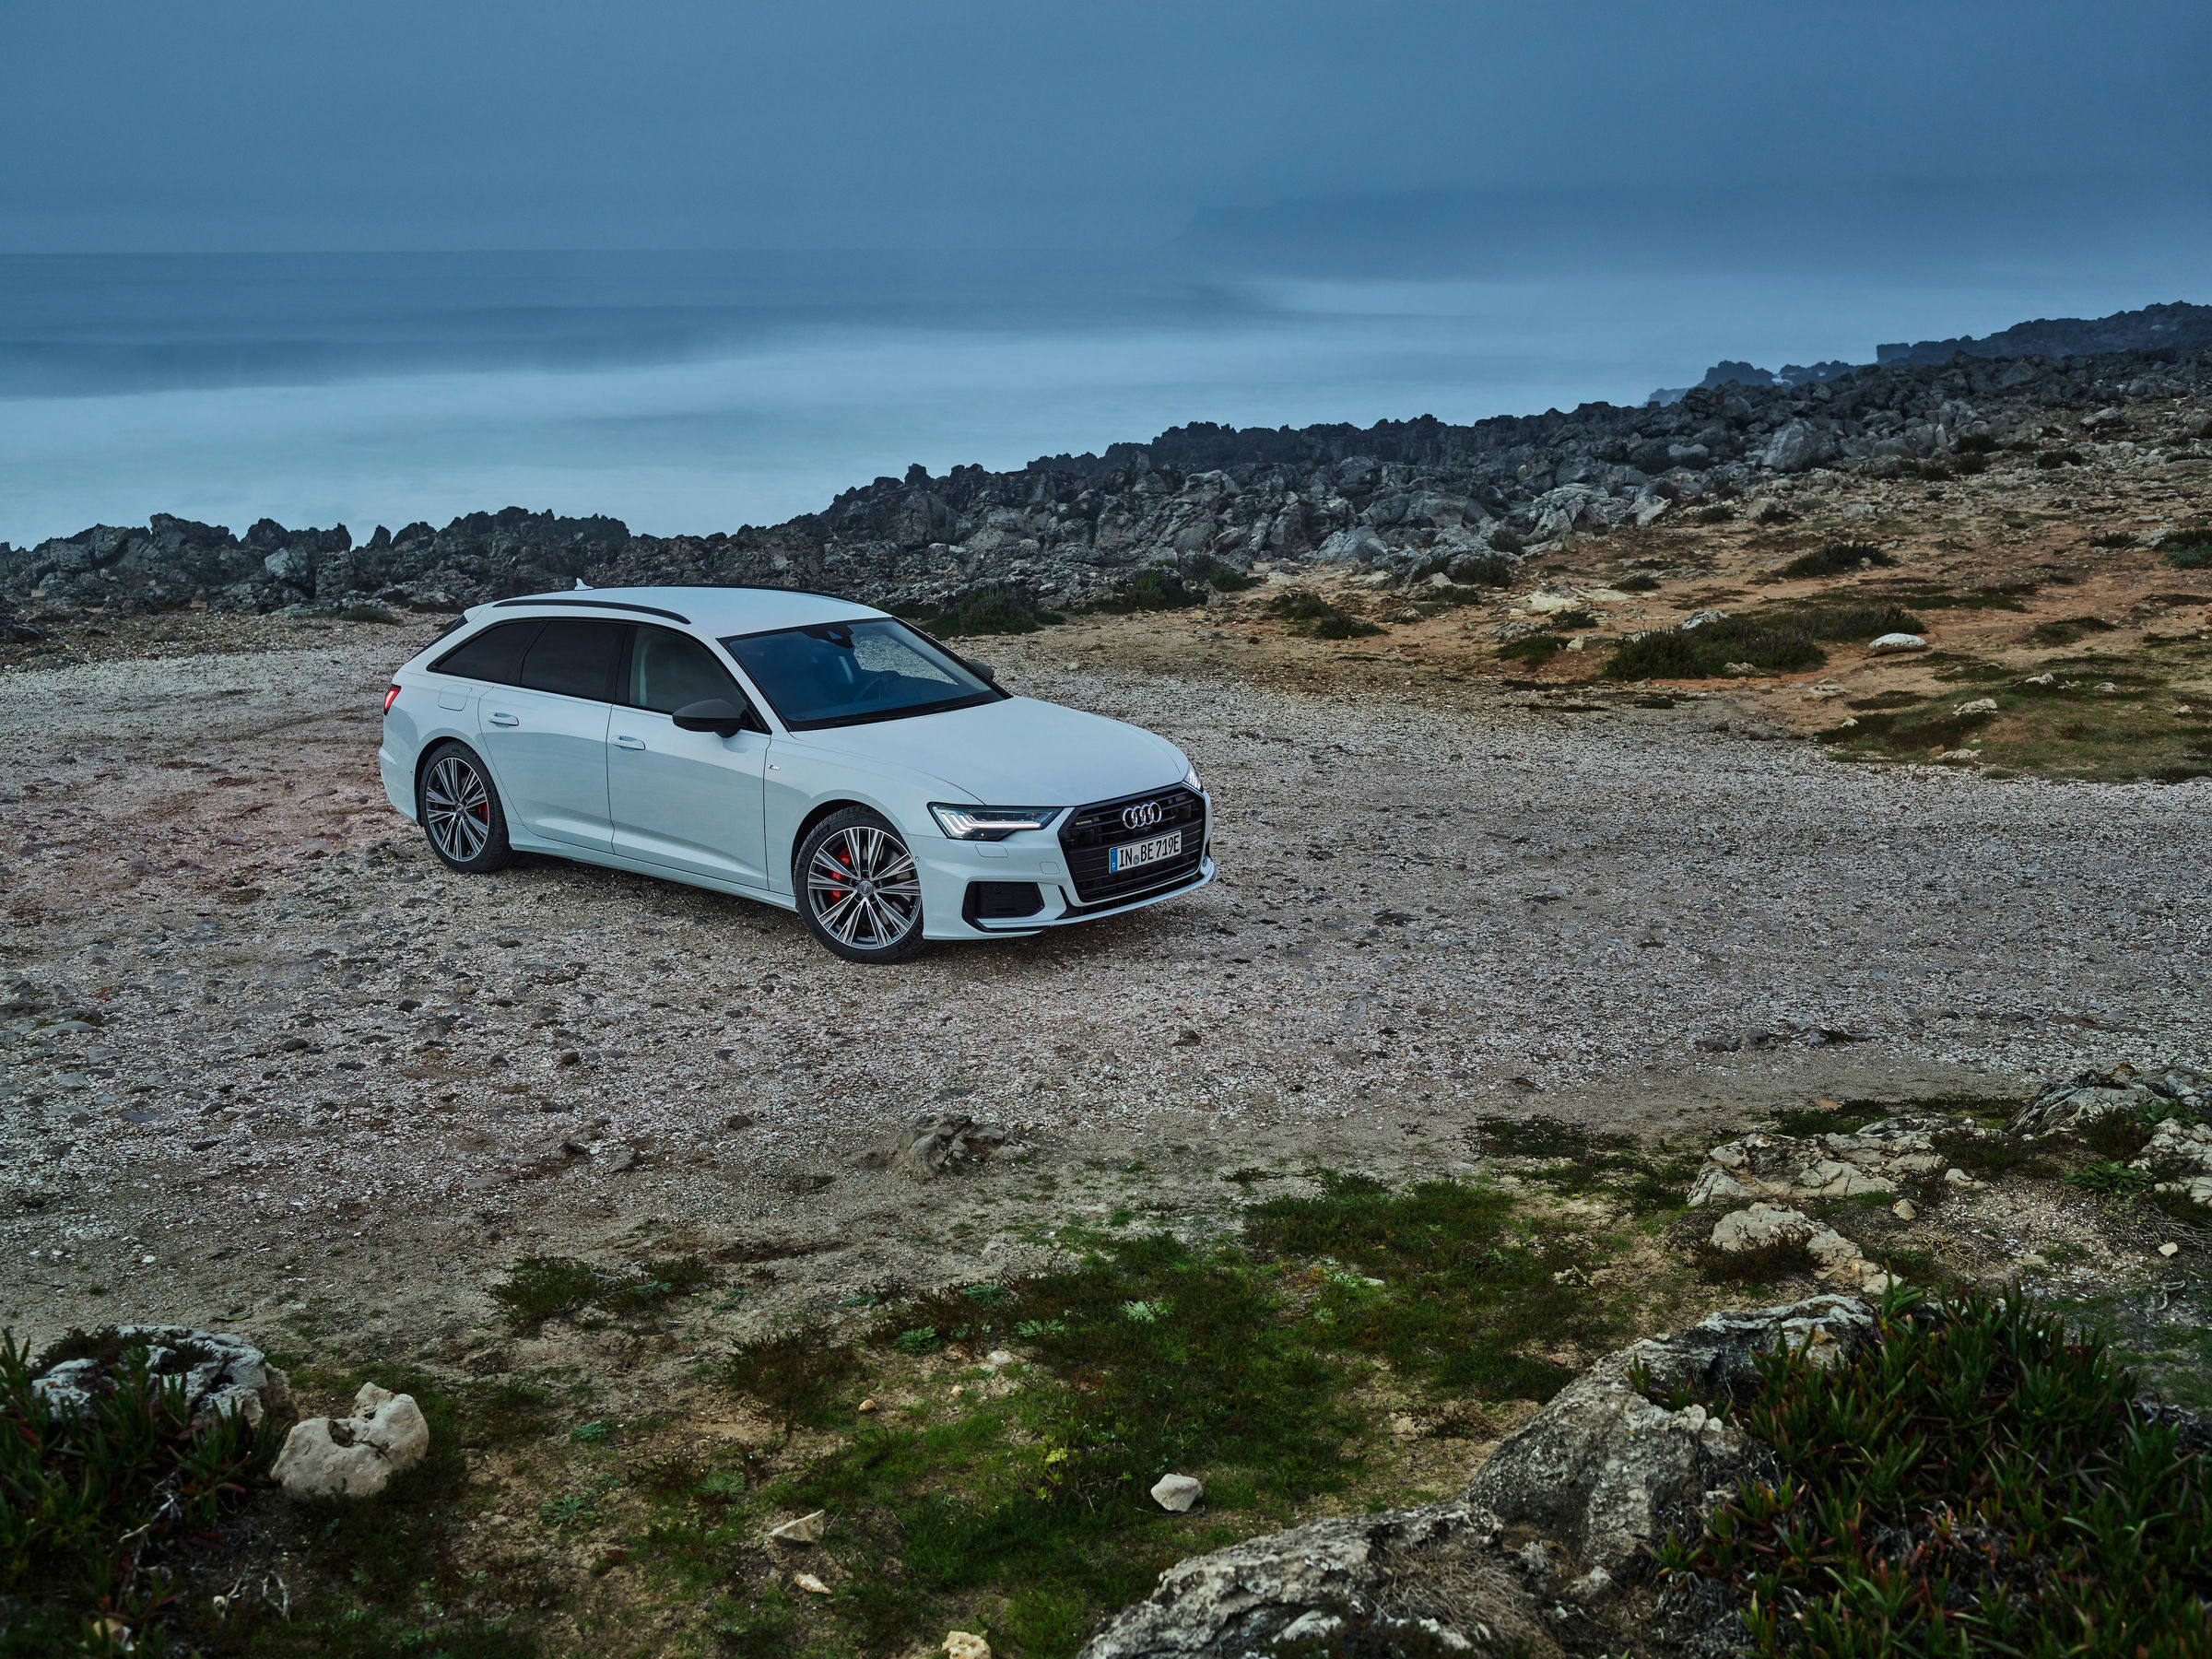 Audi full-size station wagon now as a plug-in hybrid: the new A6 Avant TFSI e quattro - Image 5